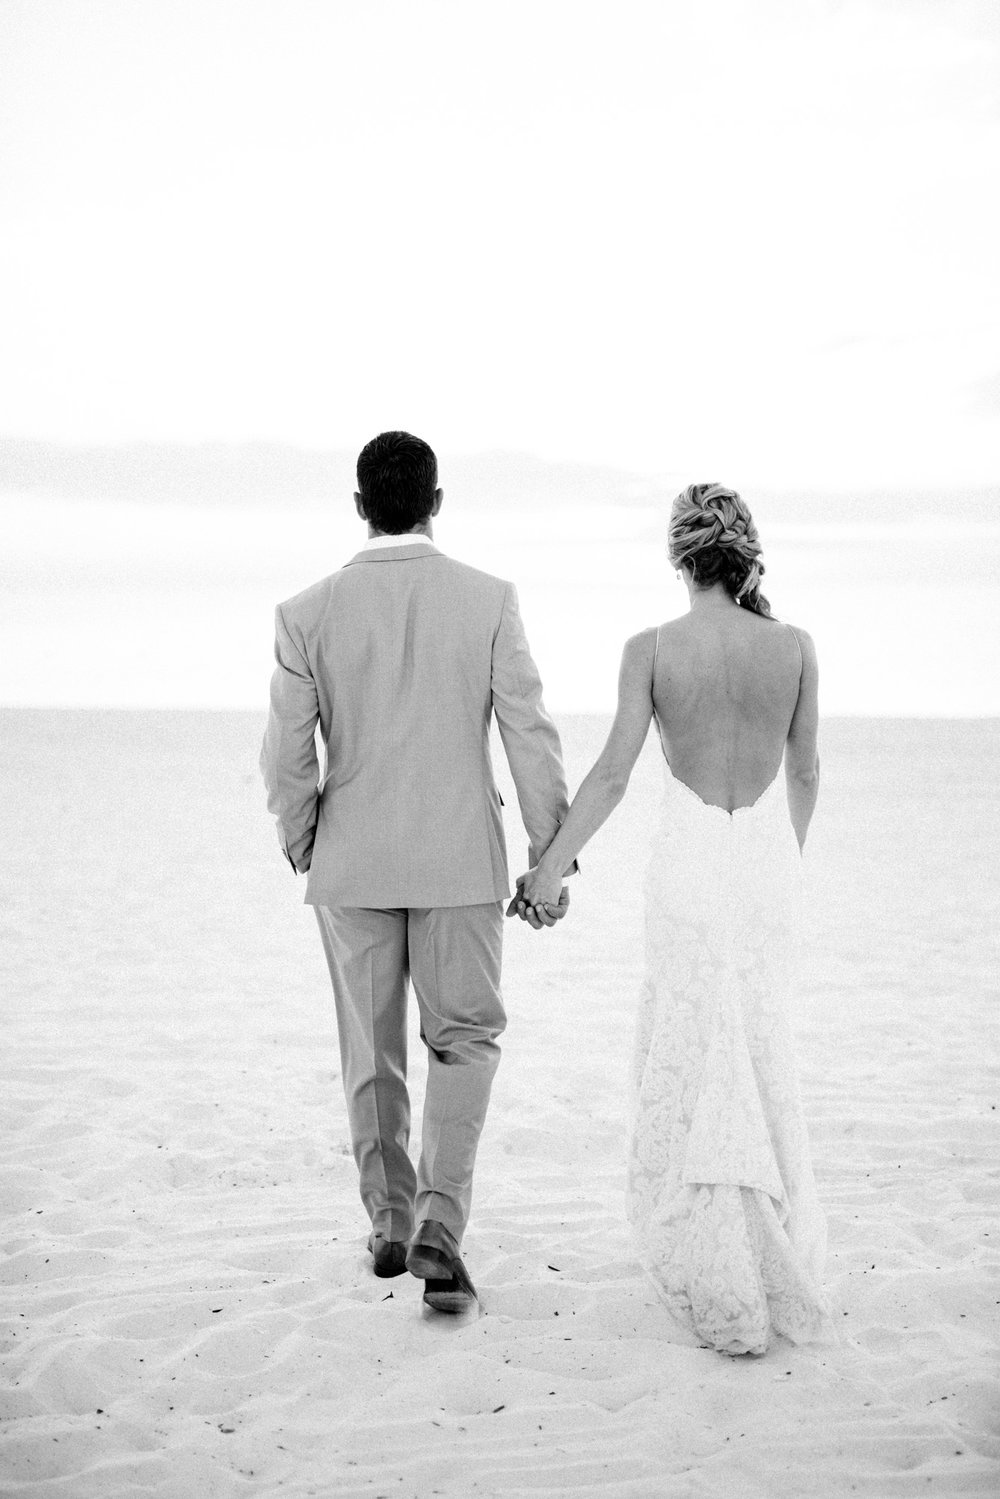 marco-beach-ocean-resort-naples-florida-wedding-photographer-hunter-ryan-photo-06072.jpg